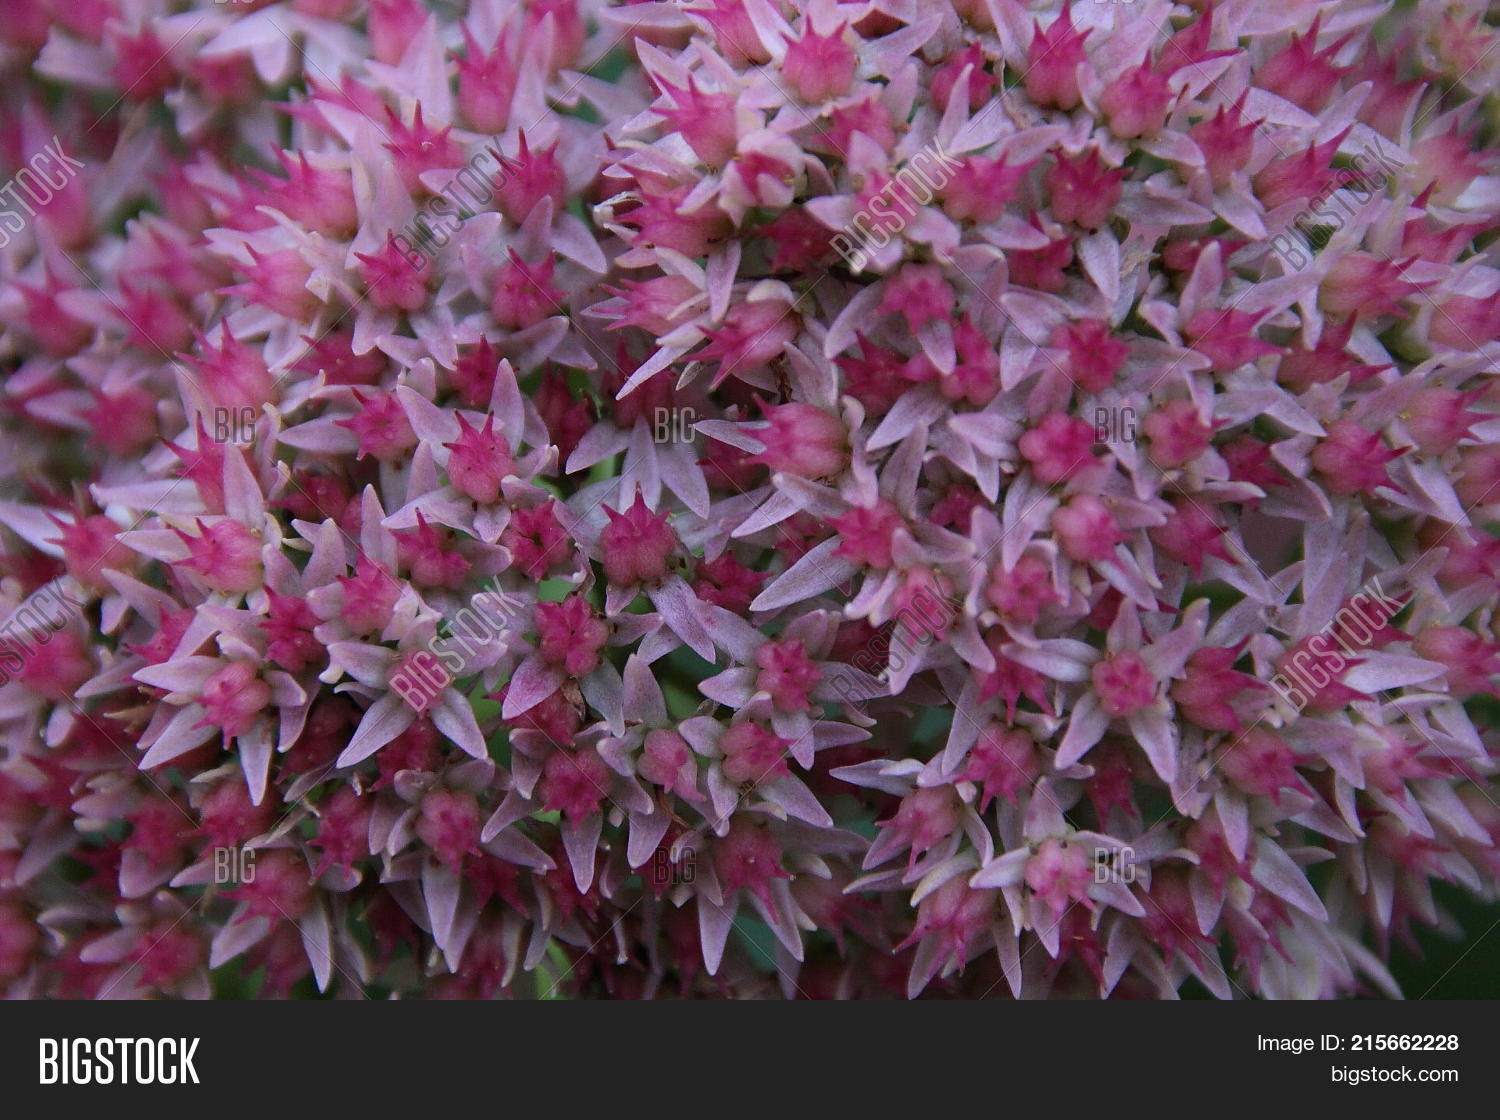 Pink Flowers Garden Image Photo Free Trial Bigstock